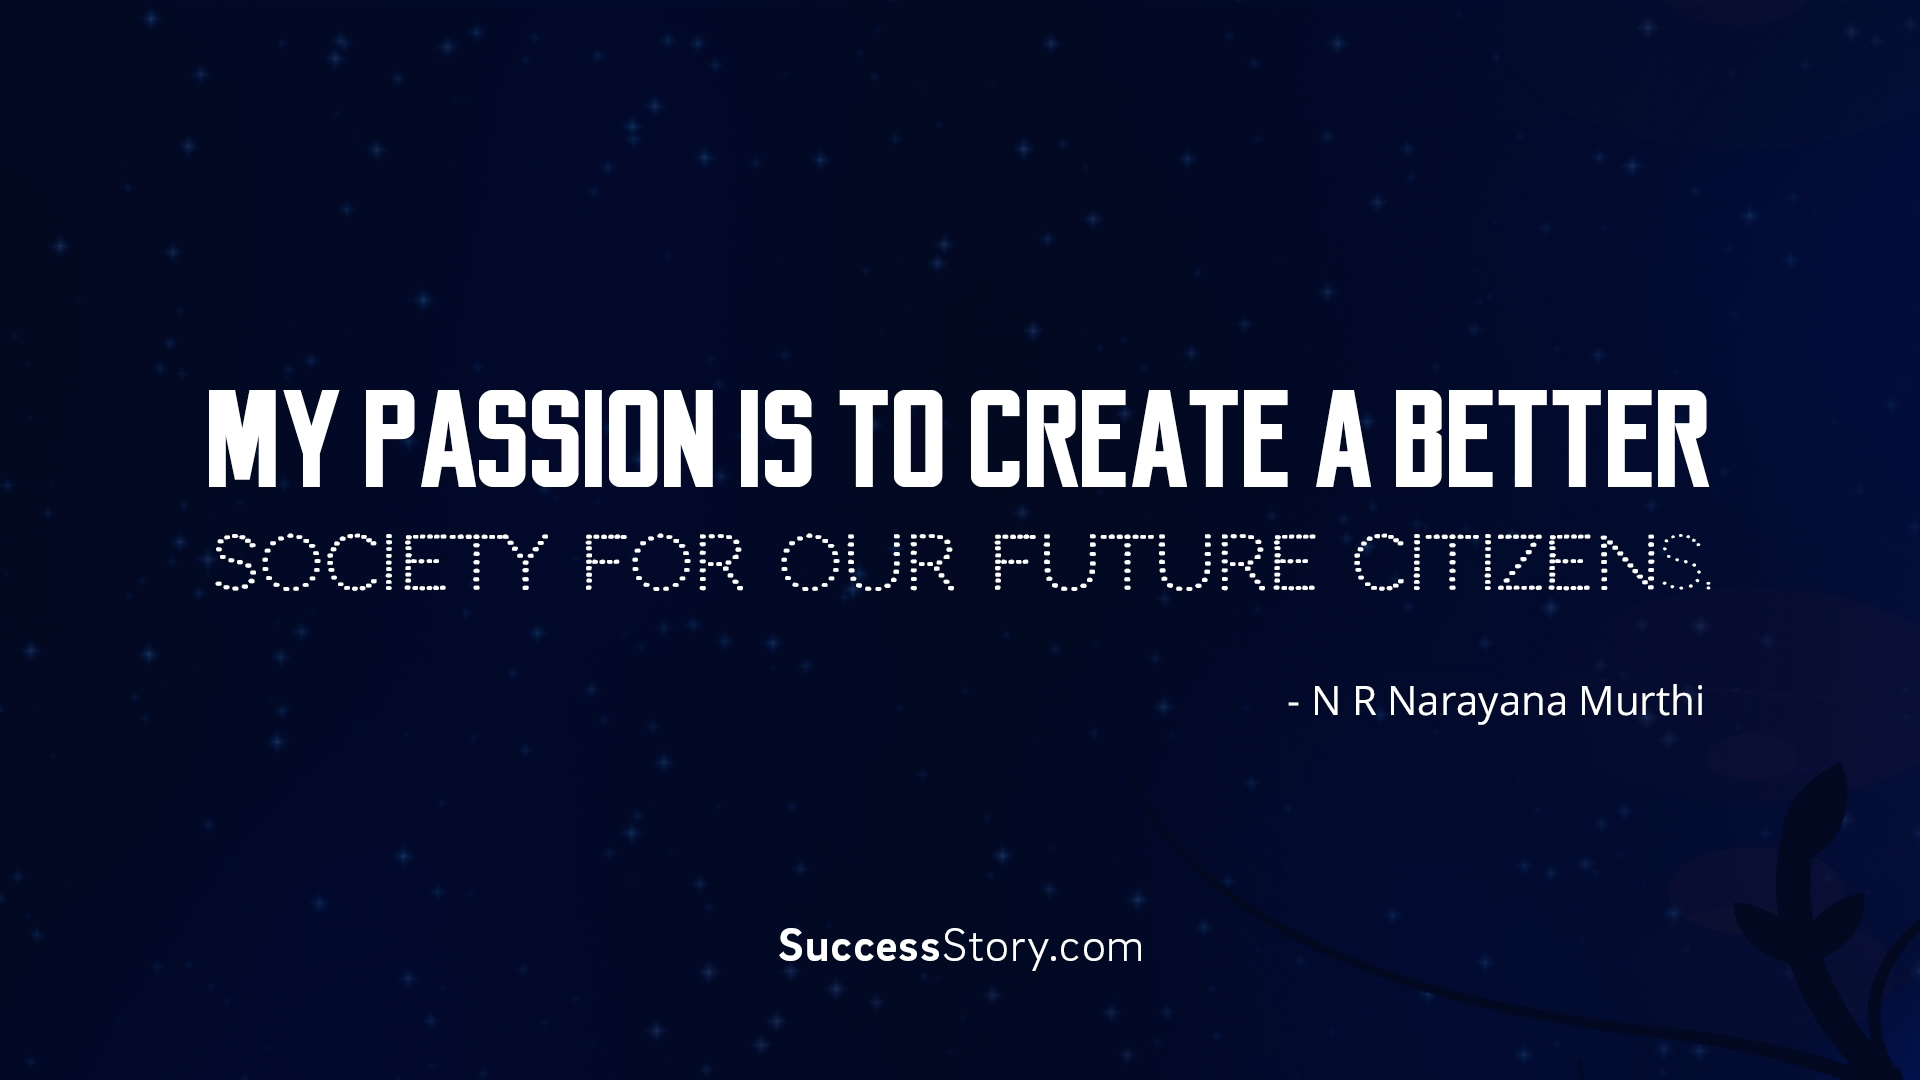 My passion is to create